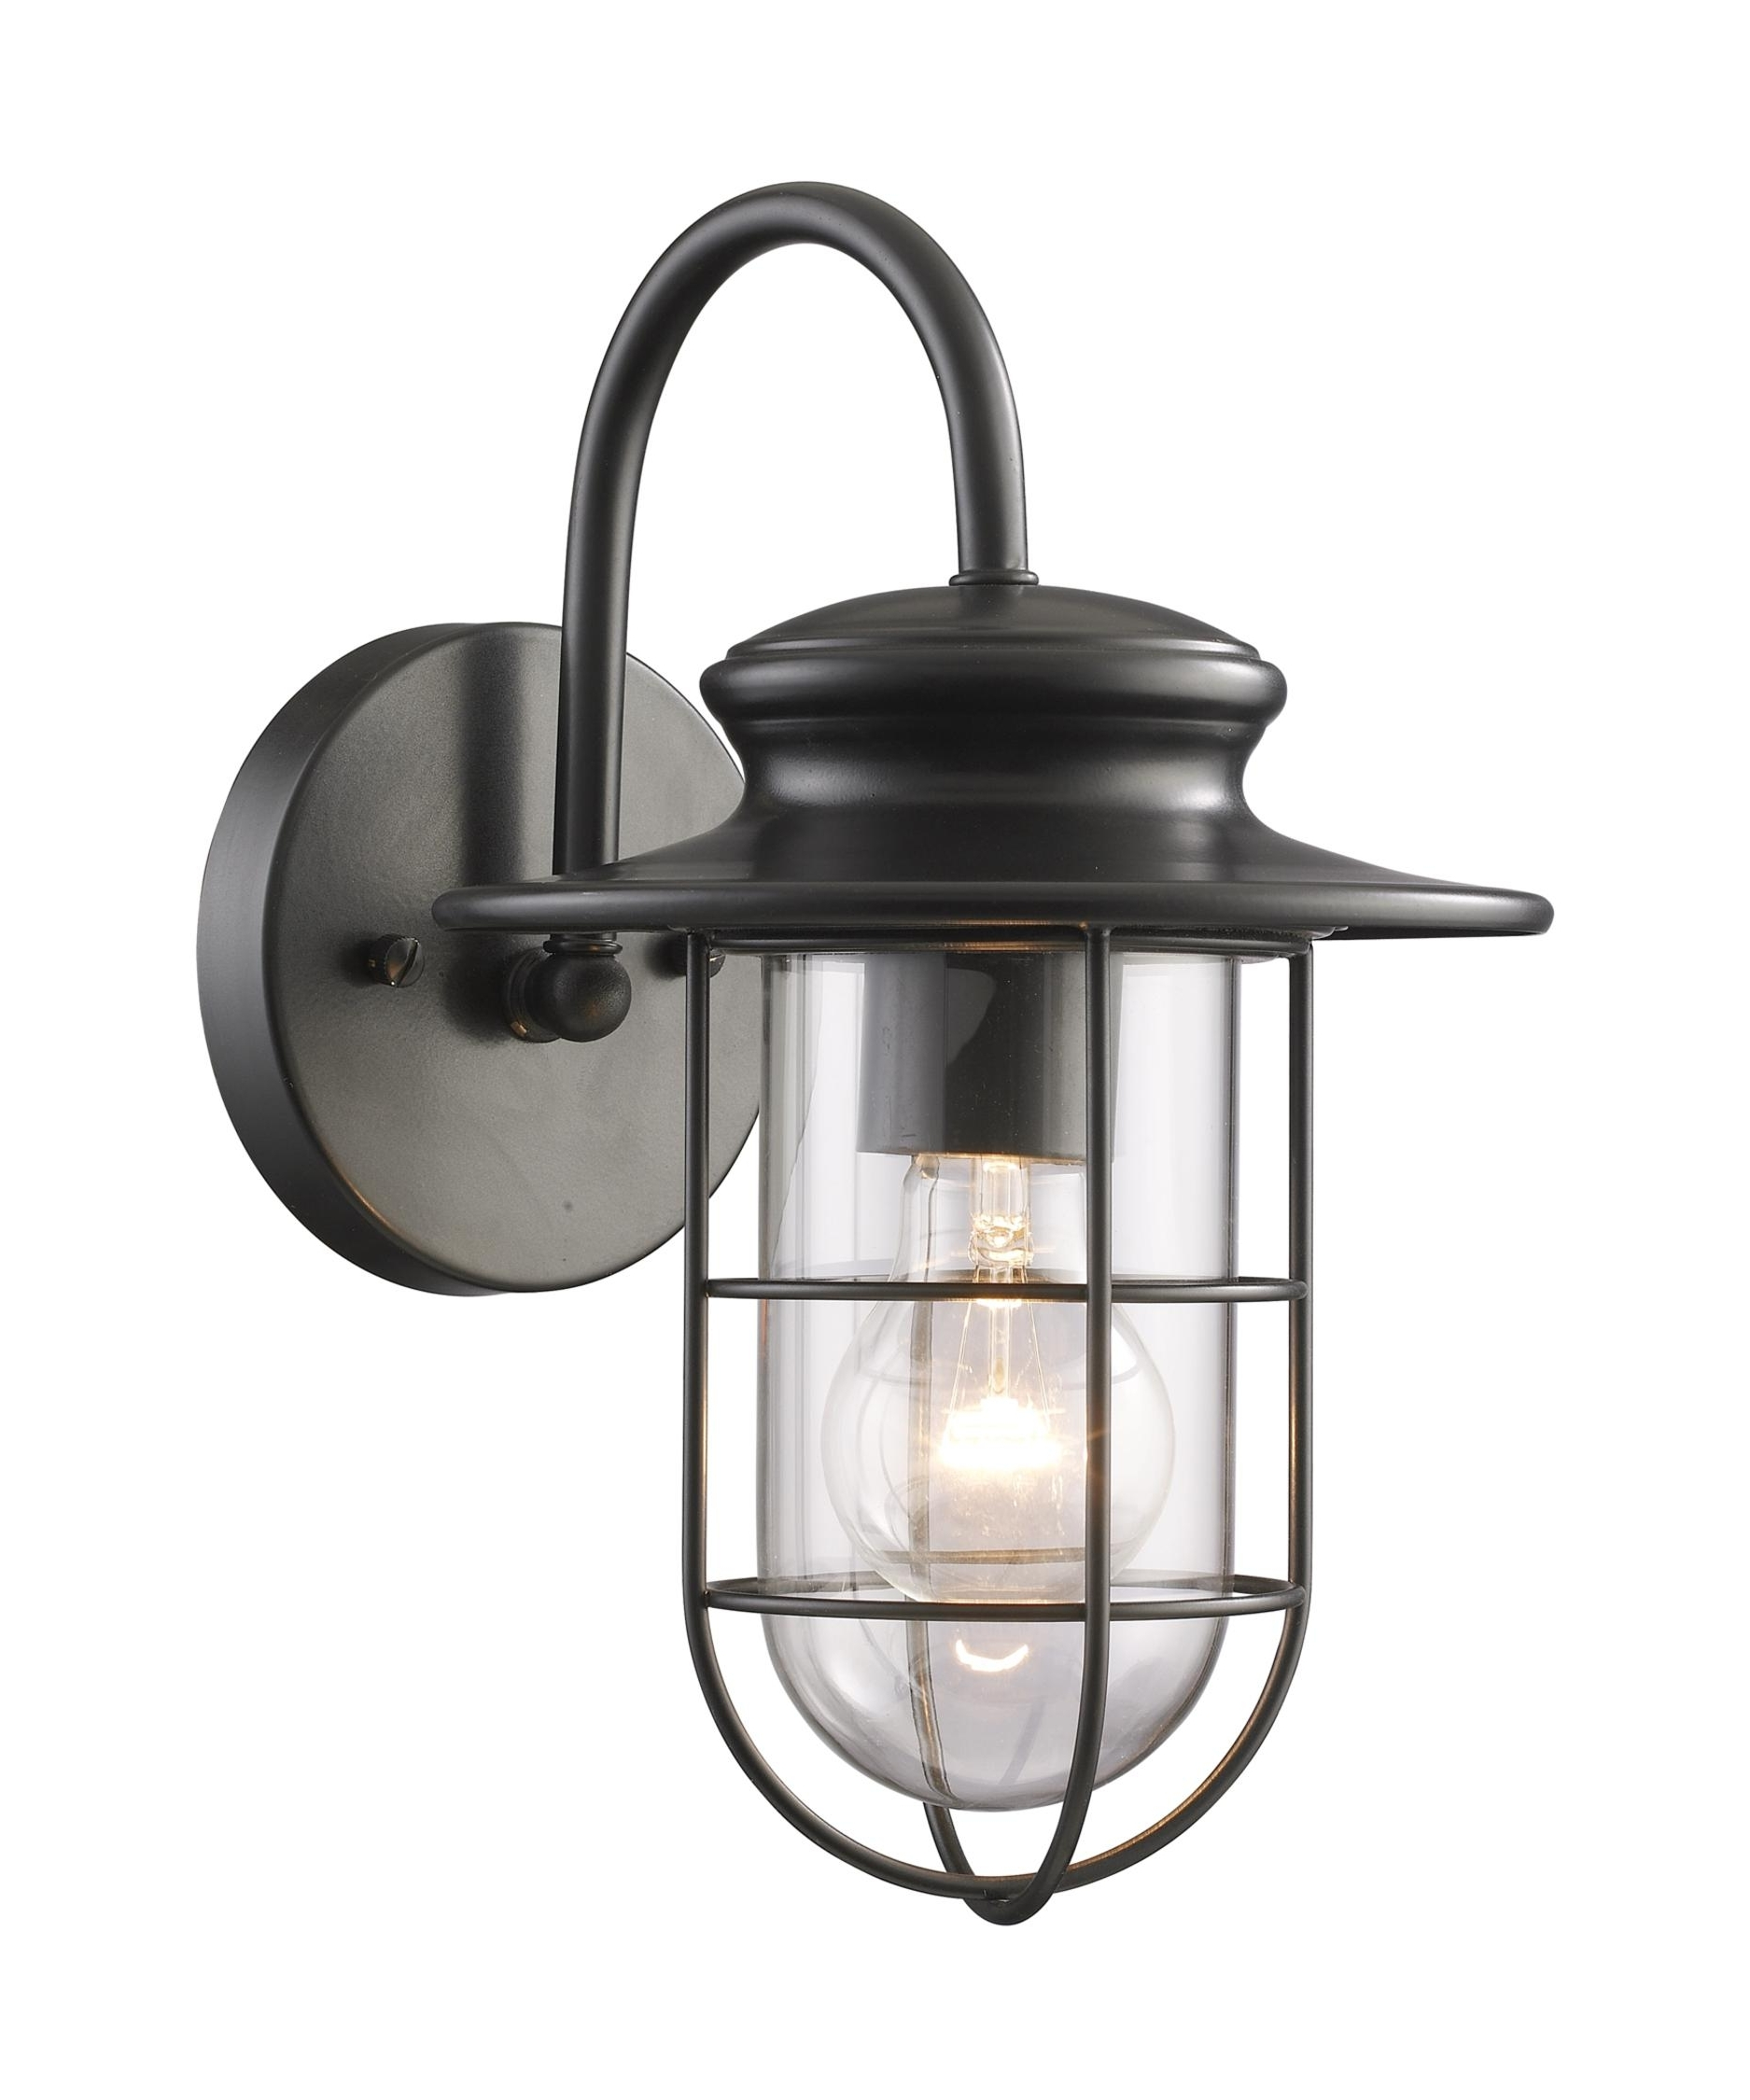 Current Elk Lighting 42284 1 Portside 7 Inch Wide 1 Light Outdoor Wall Light Inside Industrial Outdoor Wall Lighting (View 11 of 20)